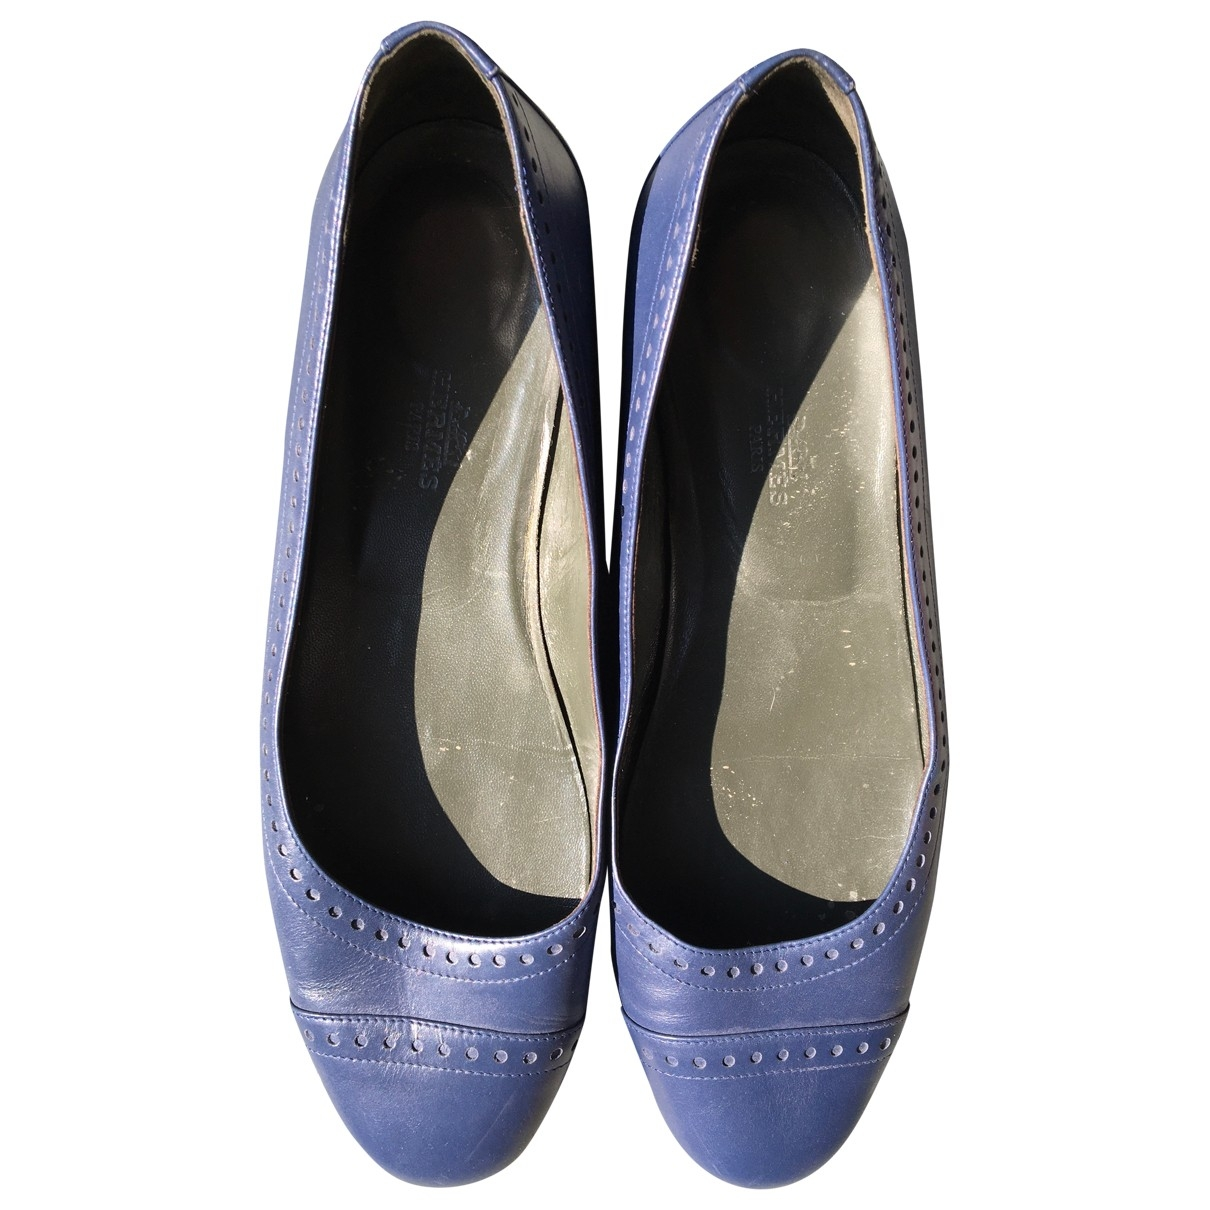 Hermès \N Blue Leather Ballet flats for Women 39 EU